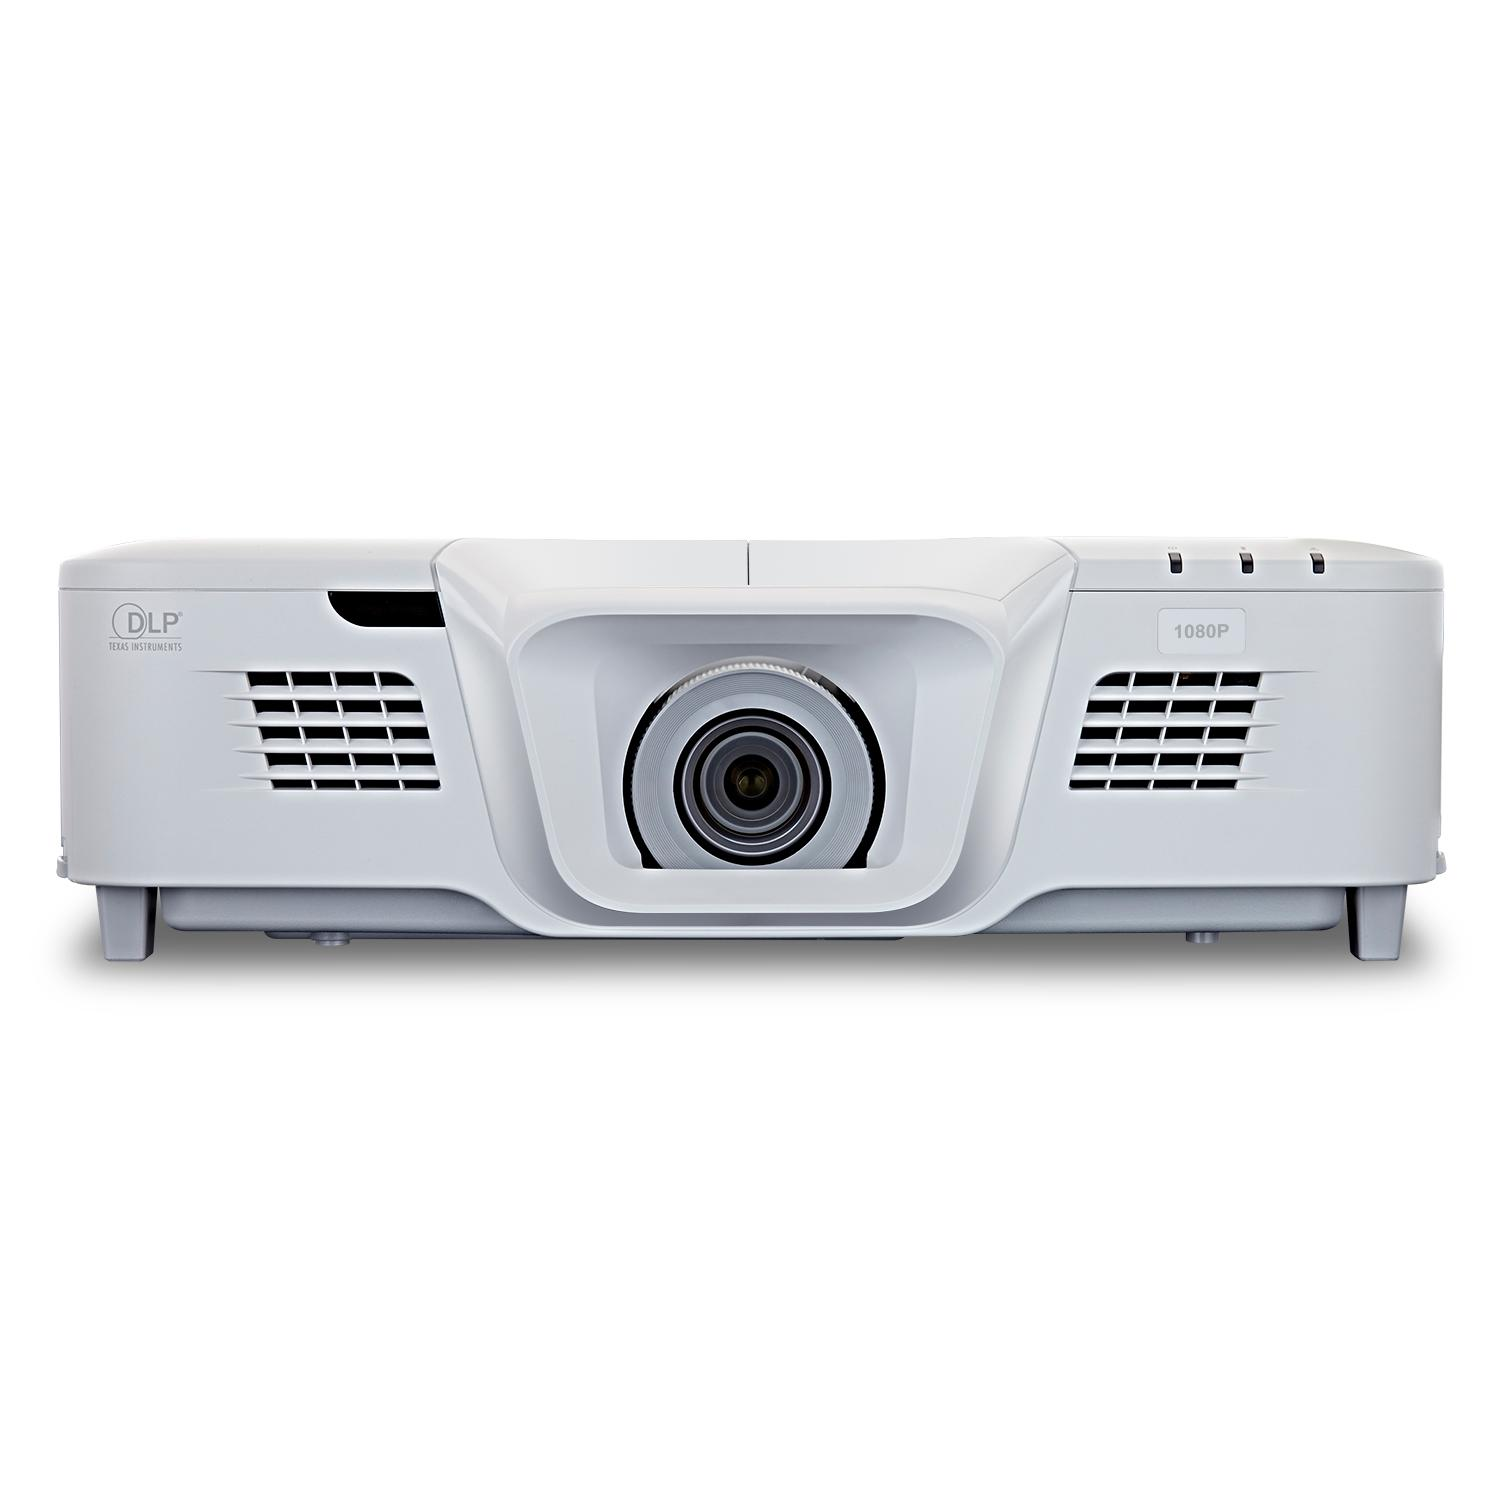 Viewsonic 5200 lumens 1080p hdmi lens shift projector for Hd projector amazon